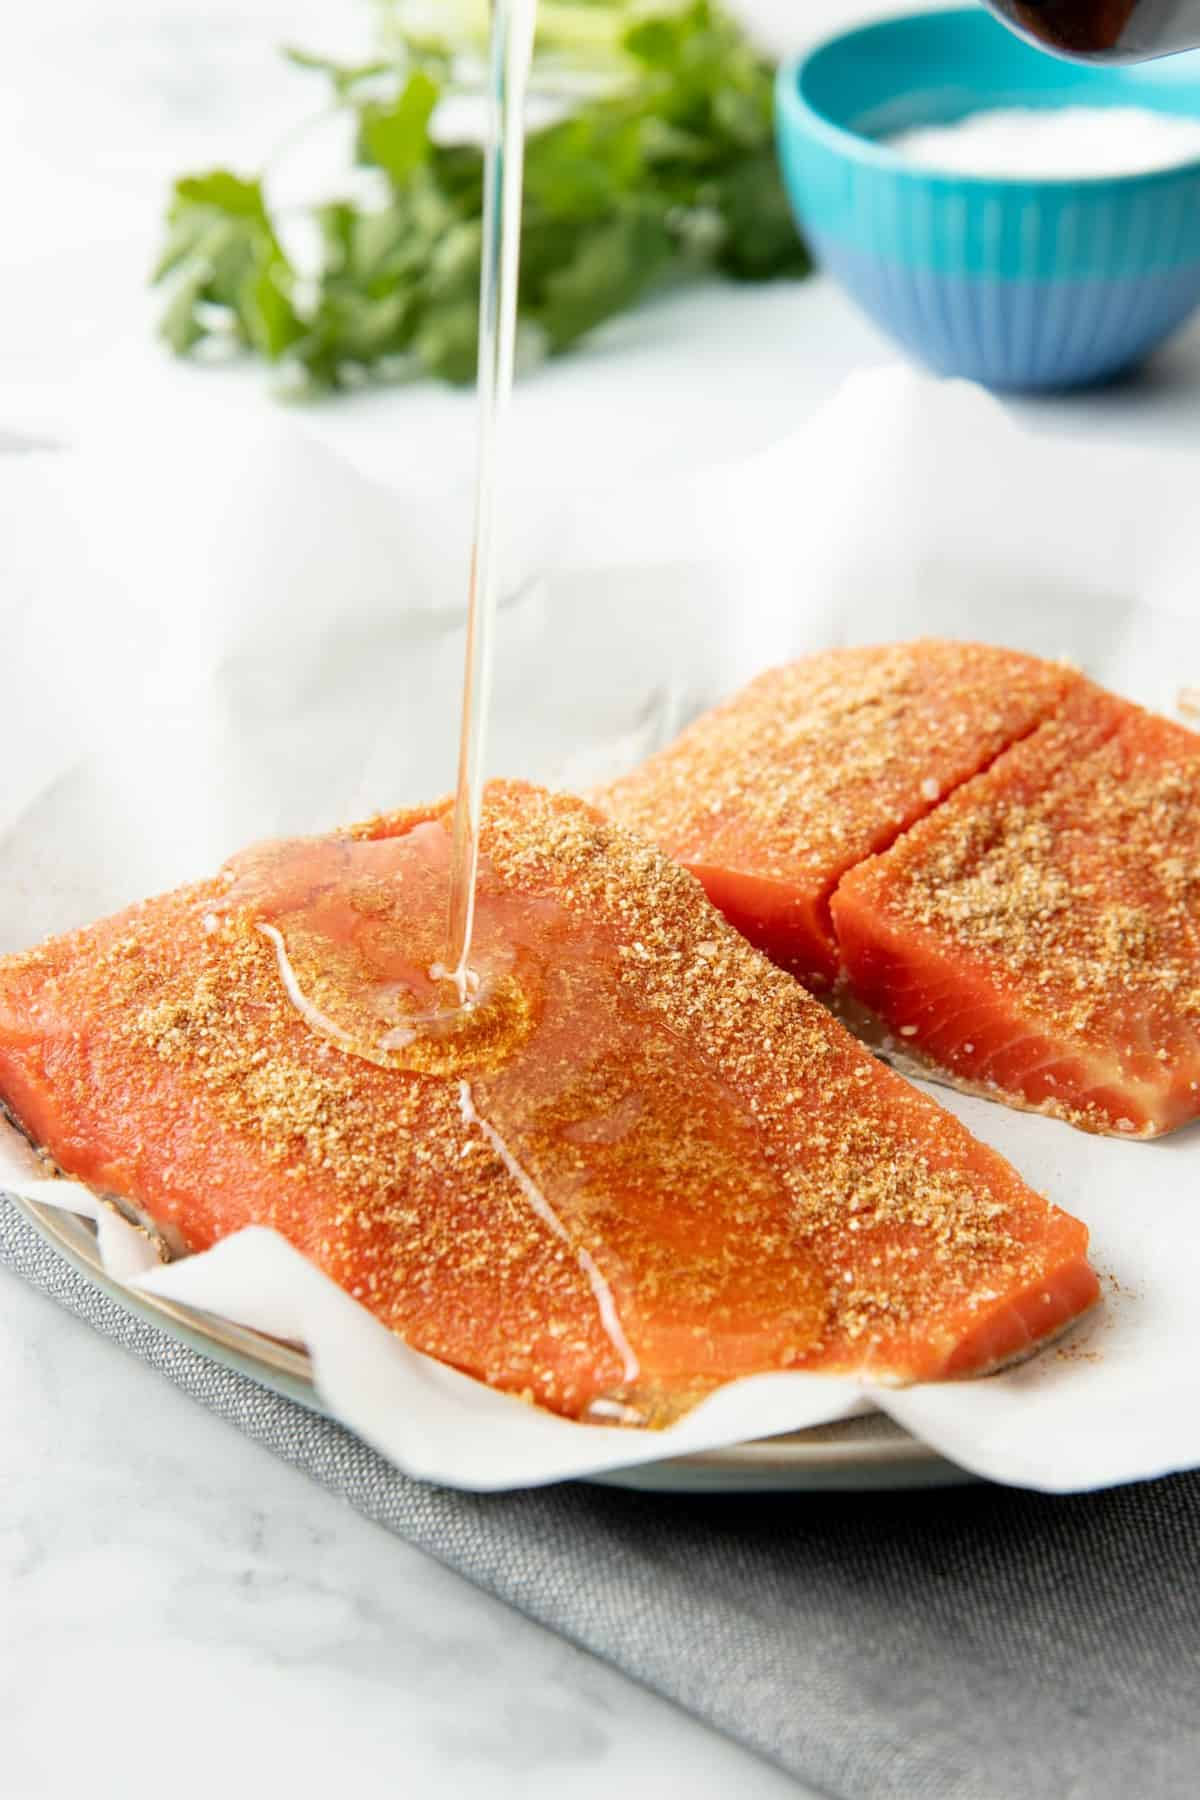 Close-up of oil pouring onto two seasoned salmon fillets.